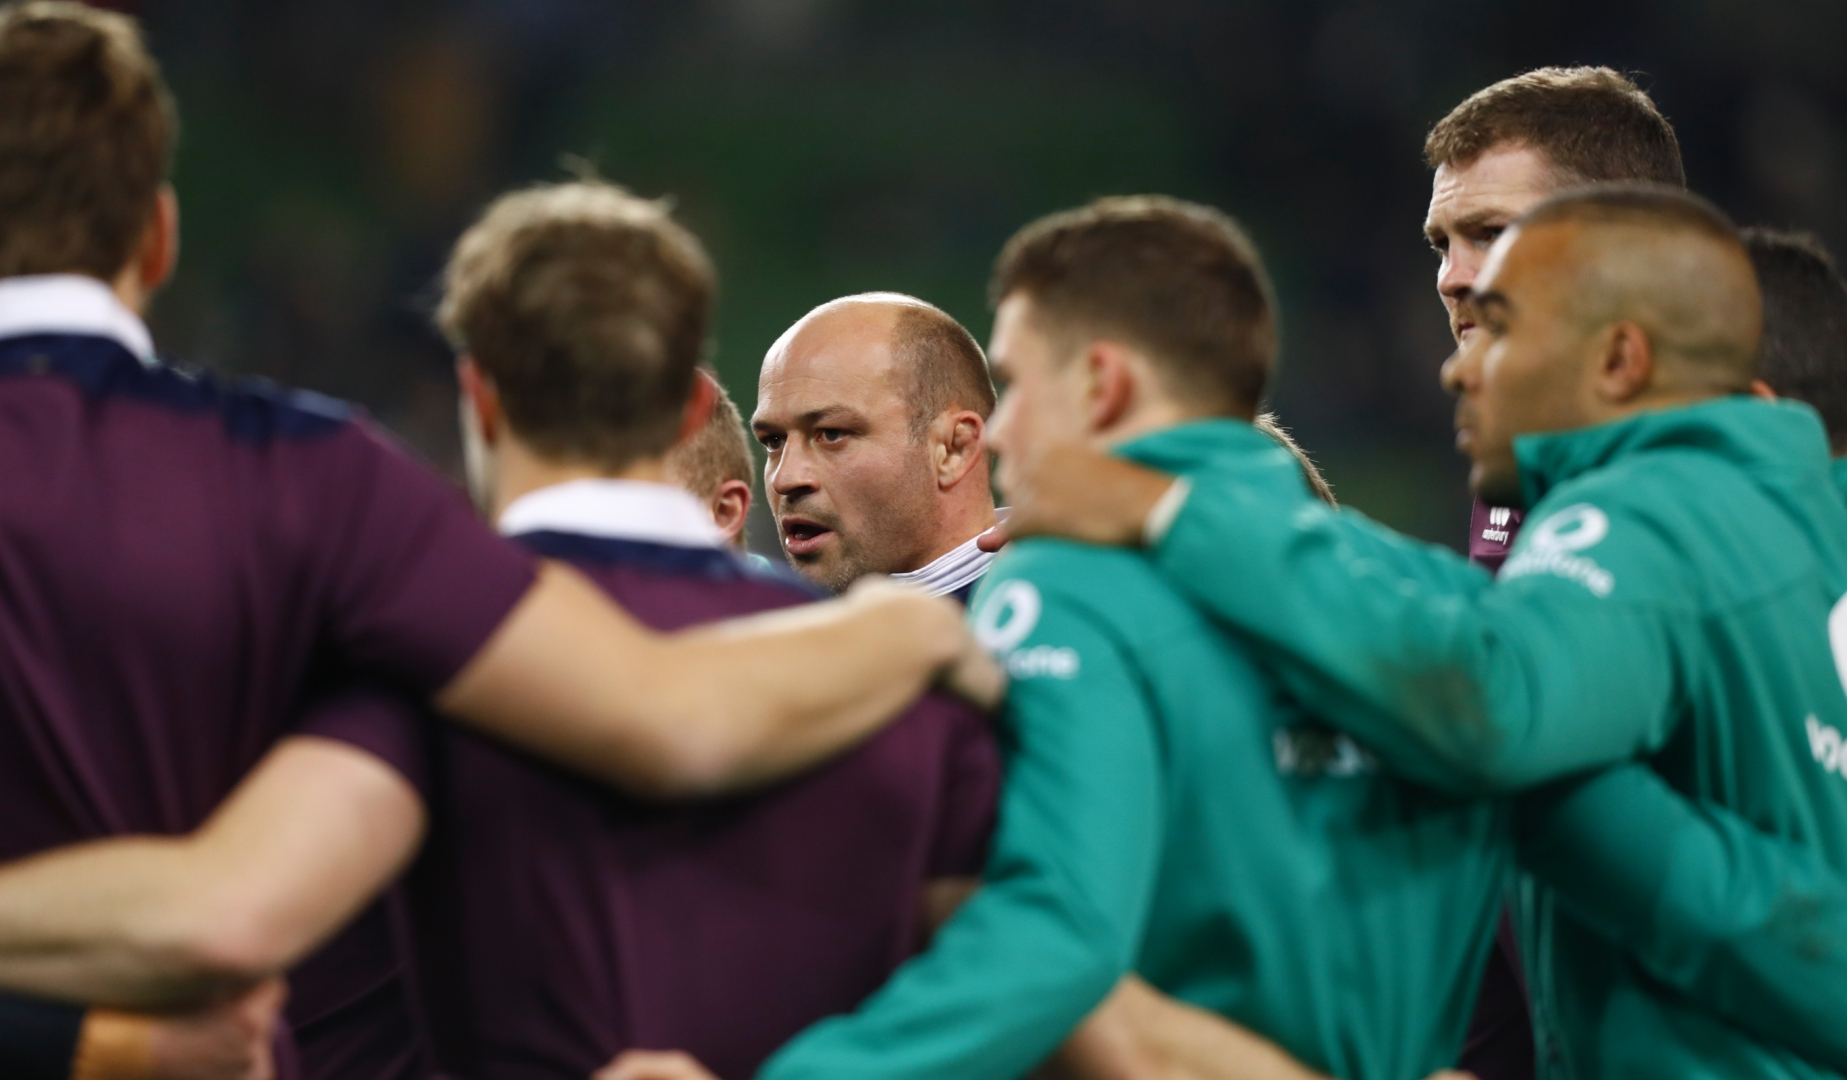 LionsWatch: Best takes pride from Ireland character